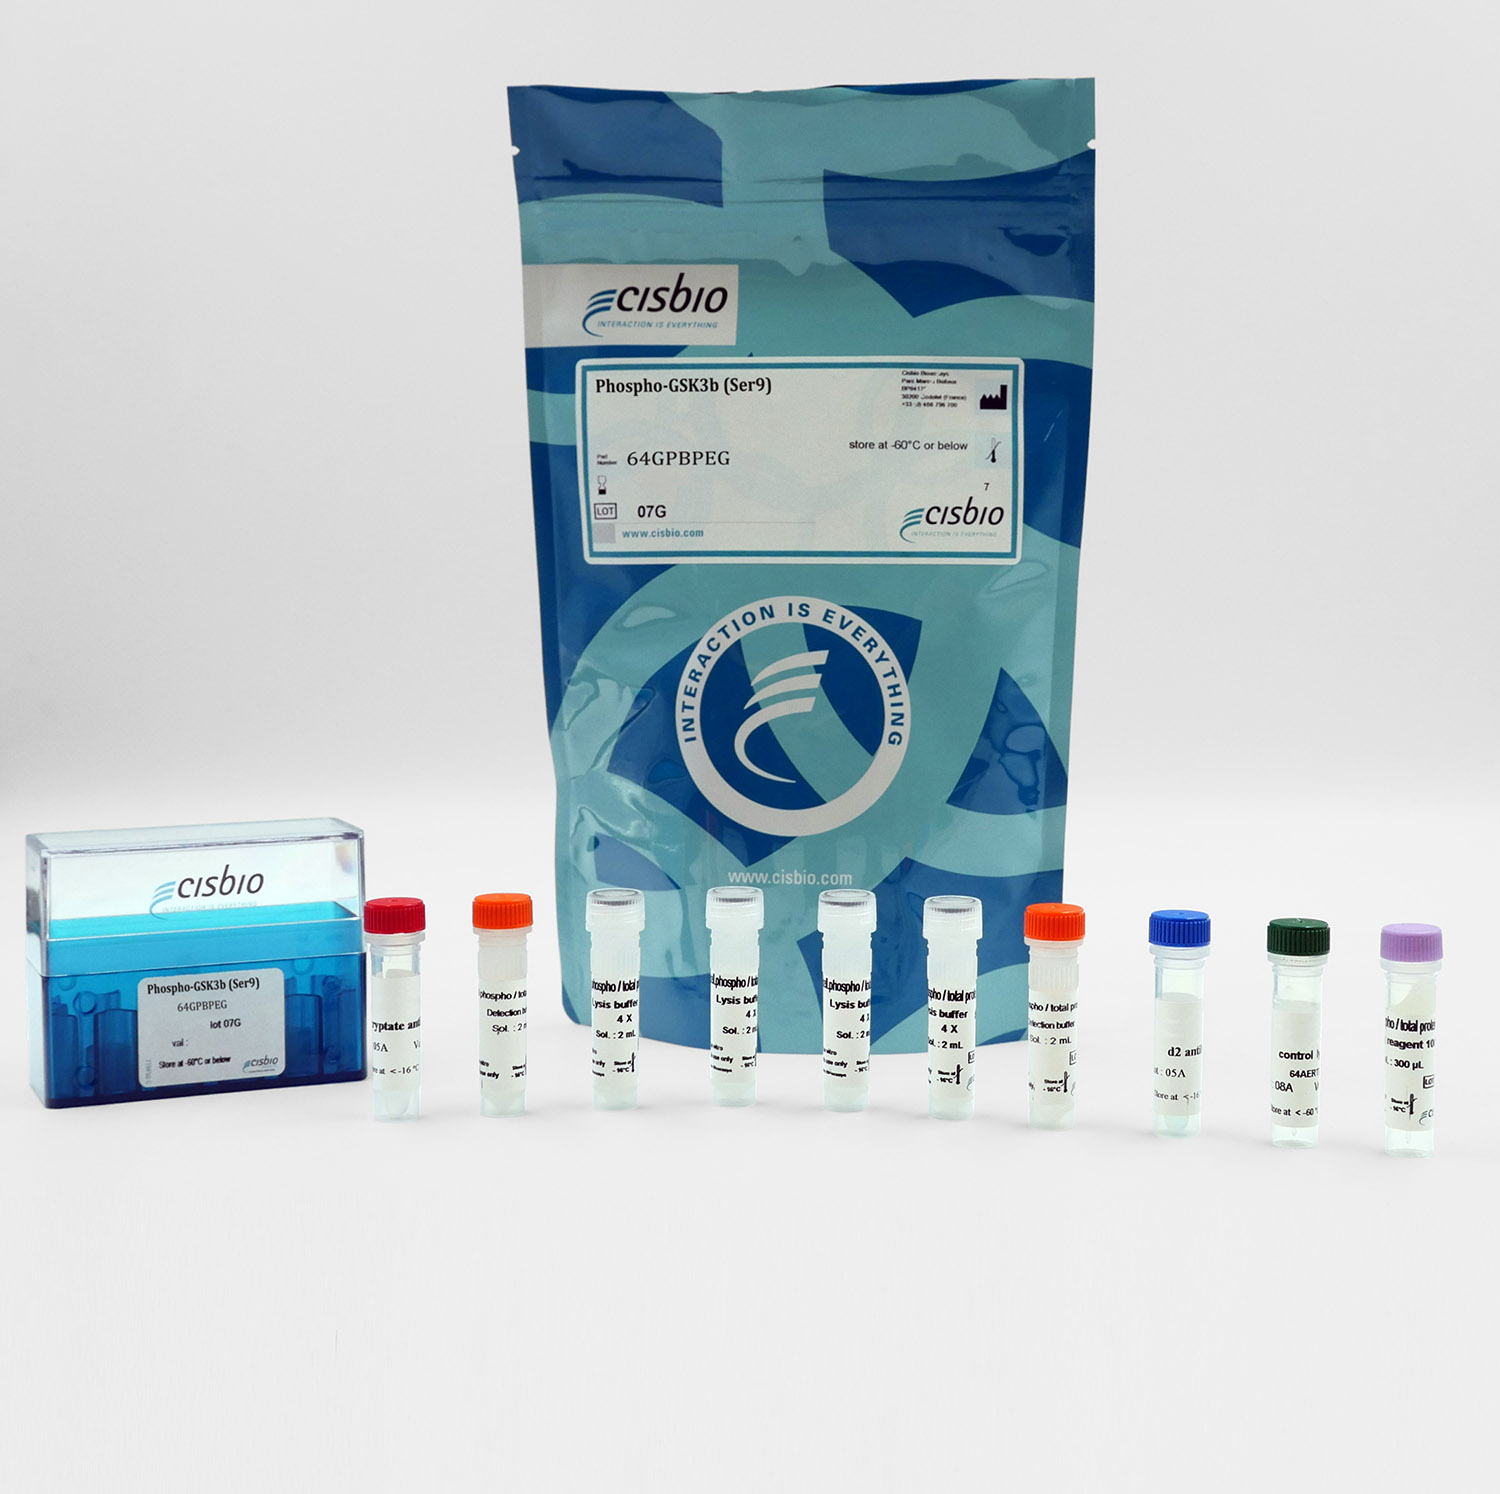 Phospho-GSK3 beta (Ser9) kit I Cisbio